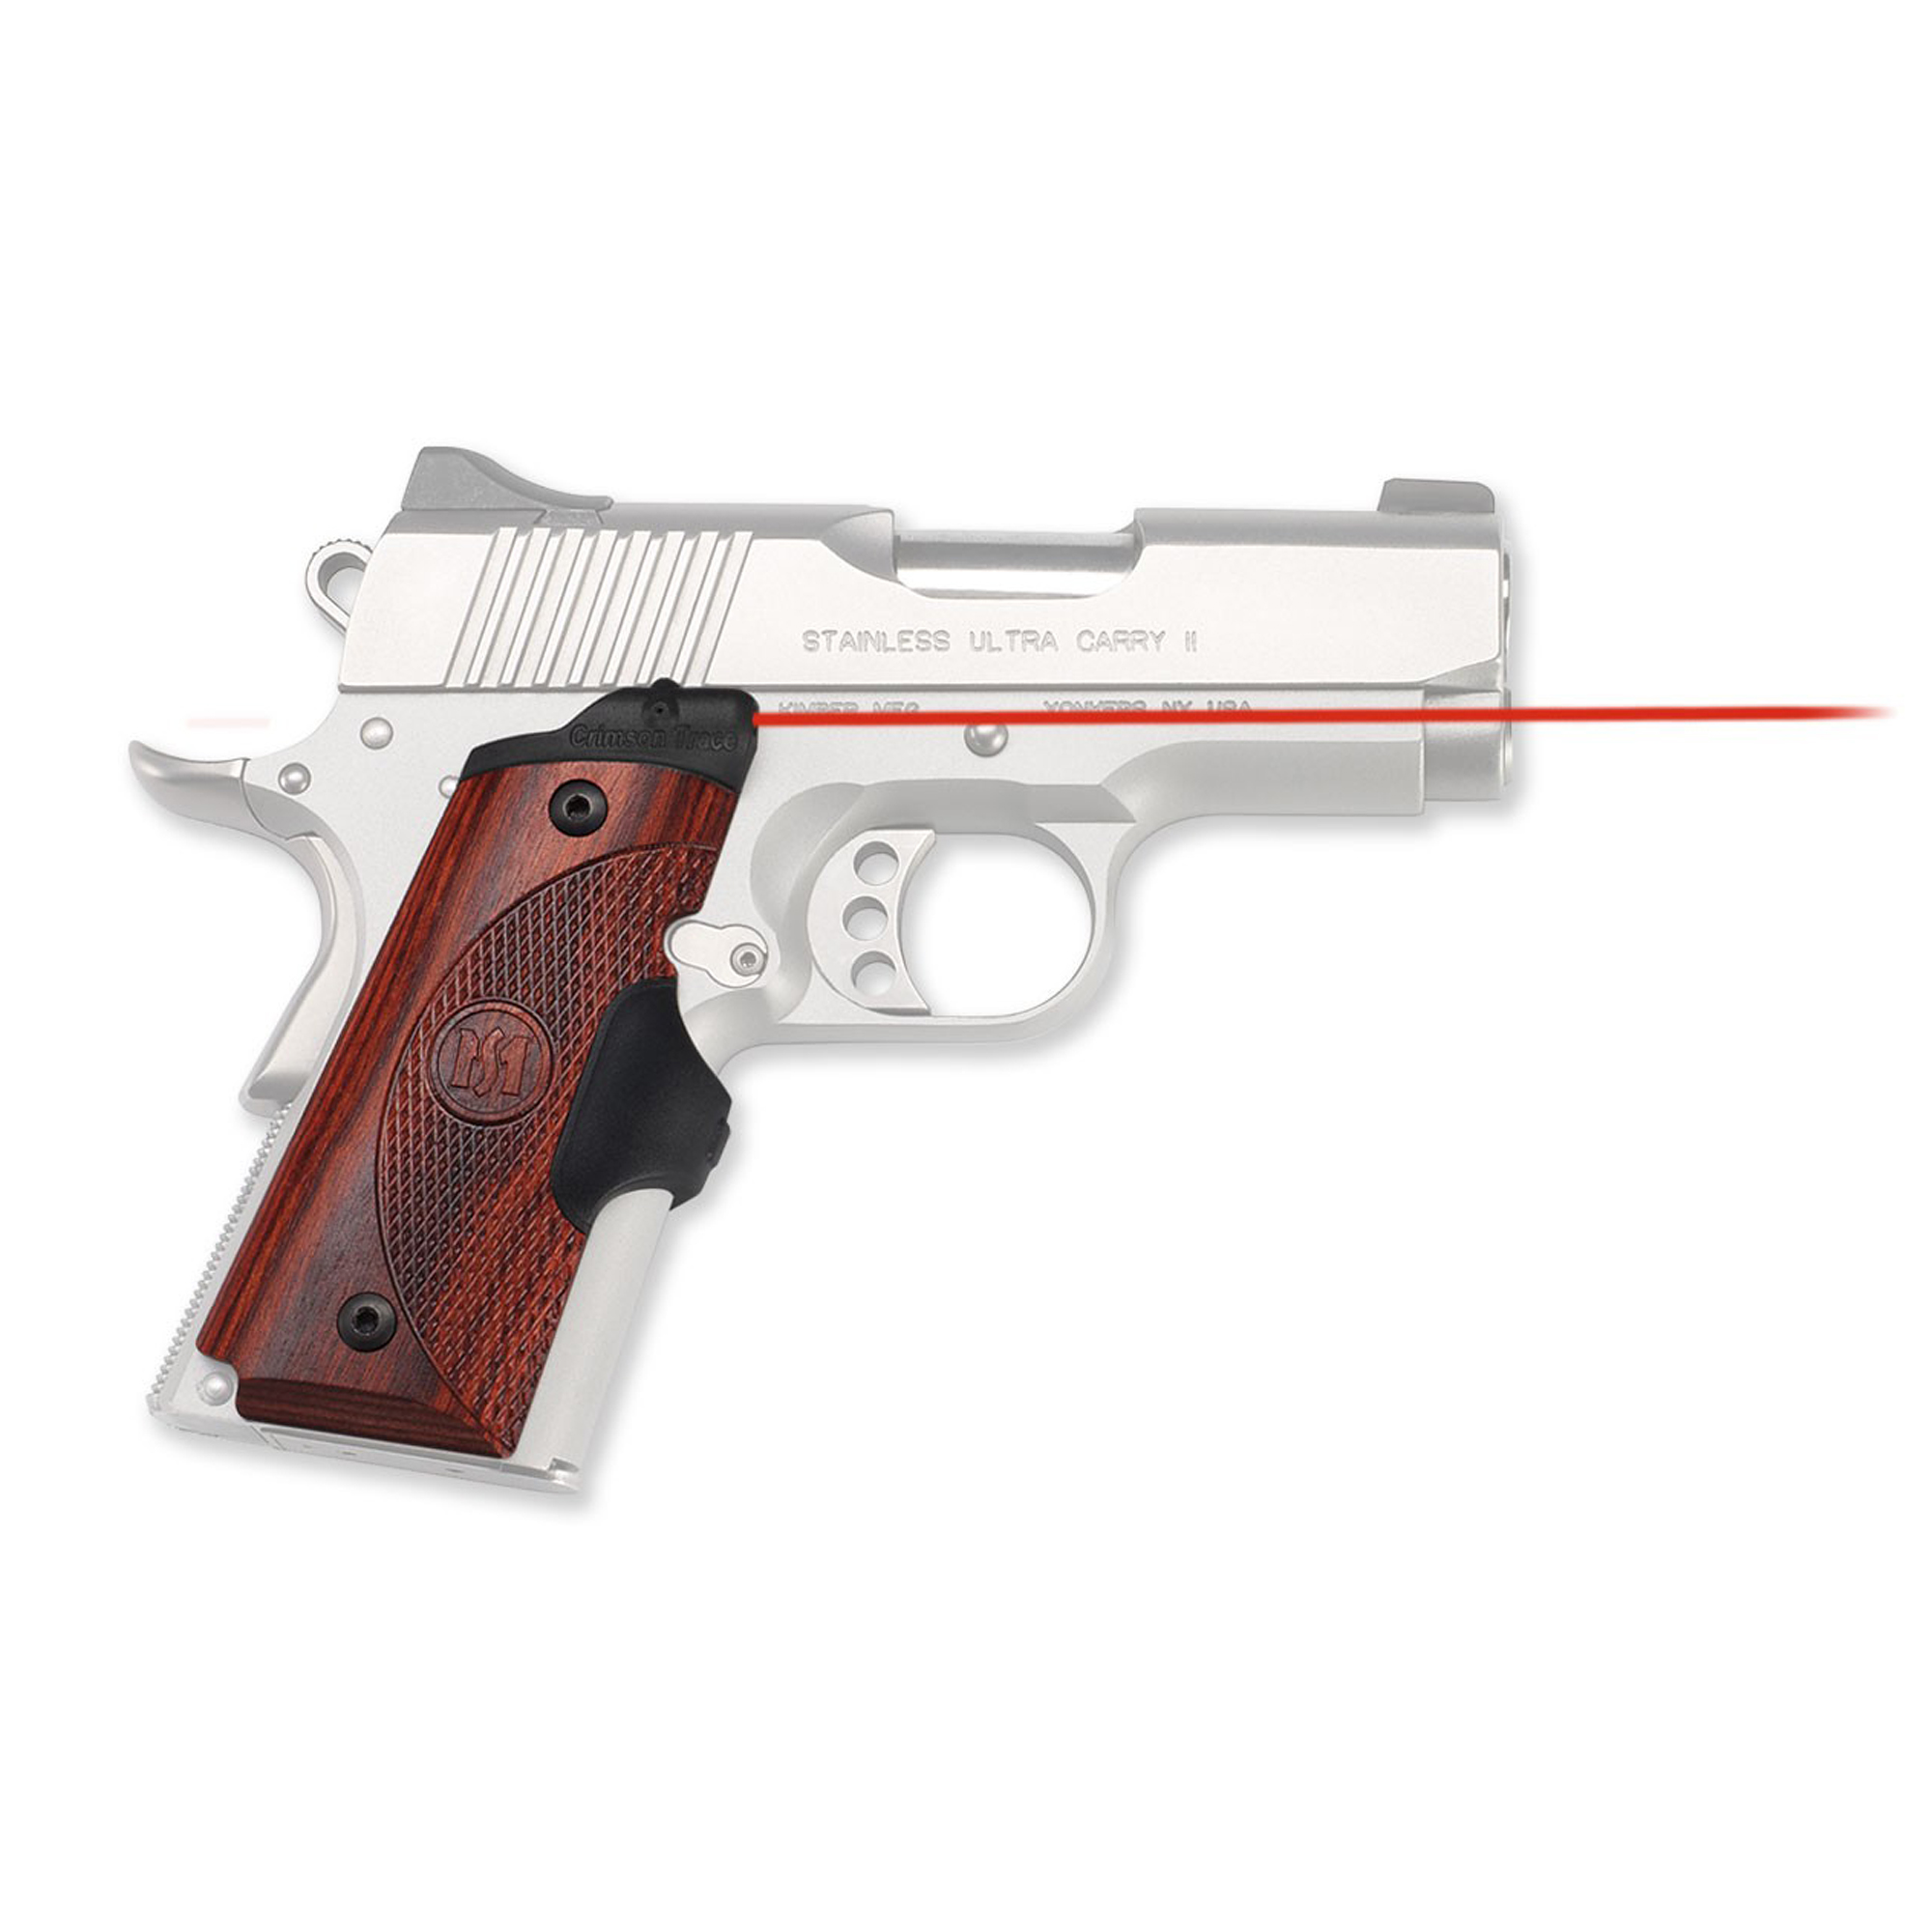 """Machined to fit seamlessly while bringing both artistry and rugged engineering to John Browning's classic 1911 design"""" Master Series(TM) Lasergrips(R) are sure to impress. Featuring ergonomic and beautiful Rosewood side panels with a rubber overmolded activation button; these are the ultimate laser sights. Standard to Crimson Trace Lasergrips"""" the LG-902 features Instinctive Activation(TM). This means that the laser sight automatically springs to life when the weapon is held in a natural firing grip."""